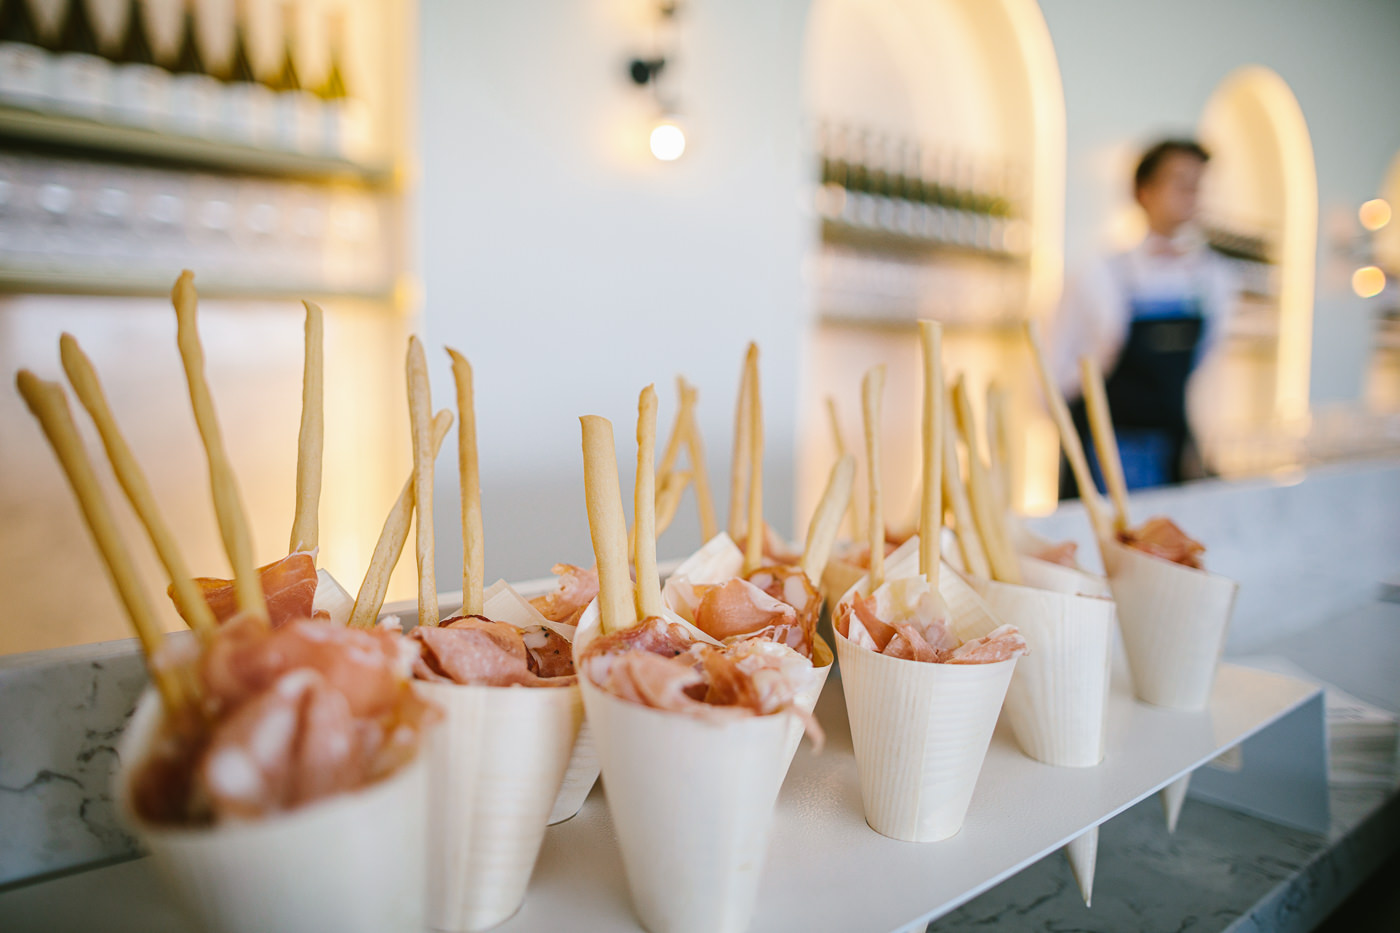 Tabcorp Marquee at the Birdcage 2019 - Food by Grosso